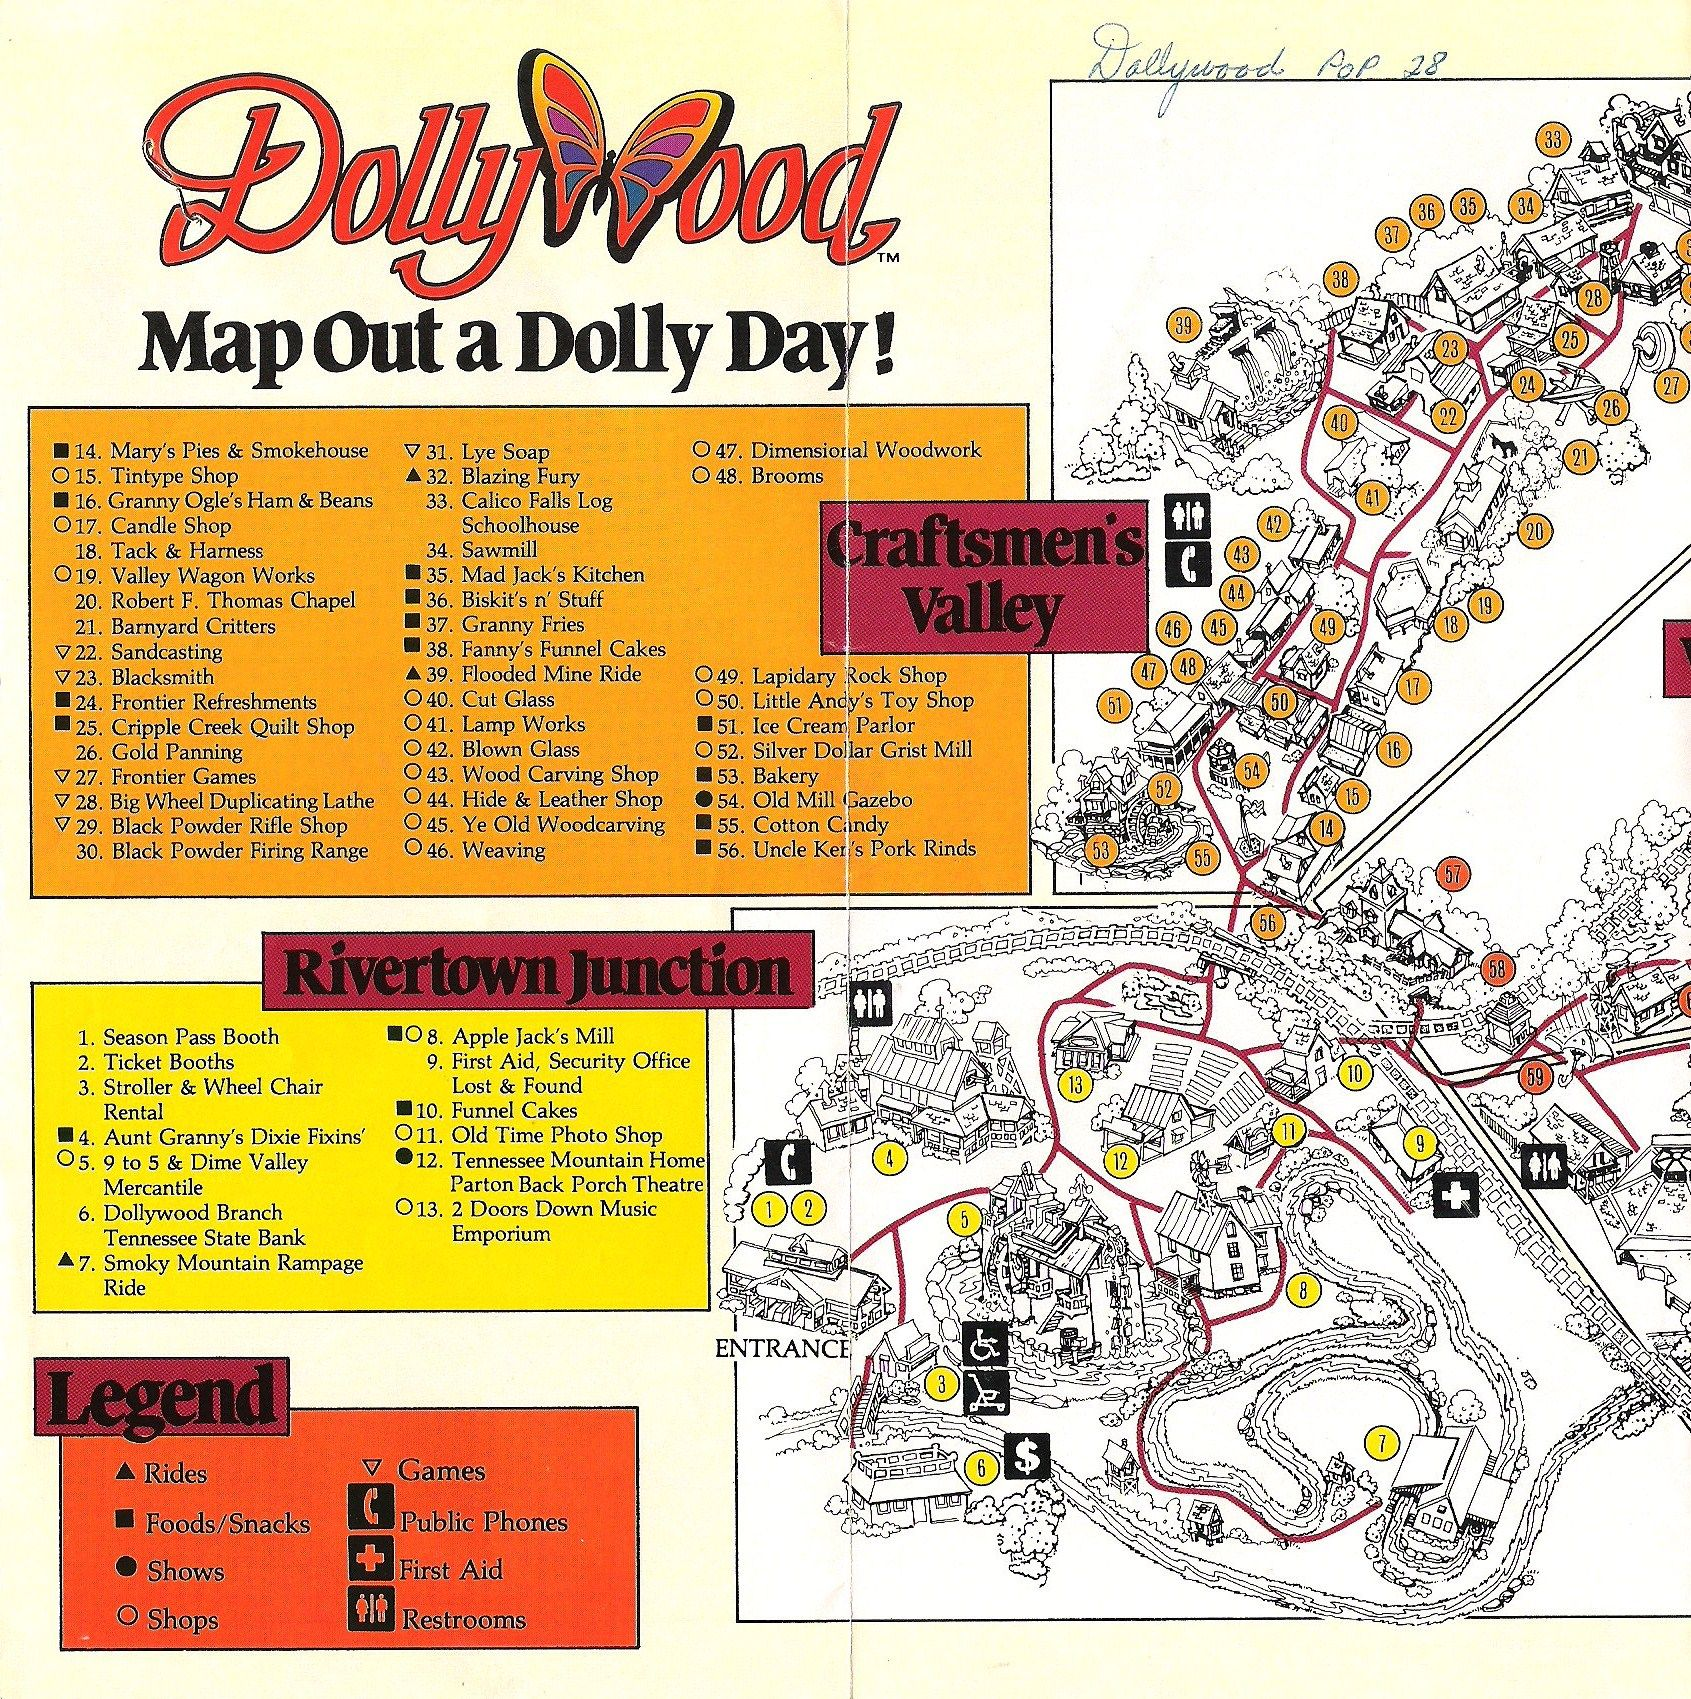 photograph regarding Dollywood Printable Coupons titled Flashback: The Dollywood Targeted visitors Expert Map versus 1986